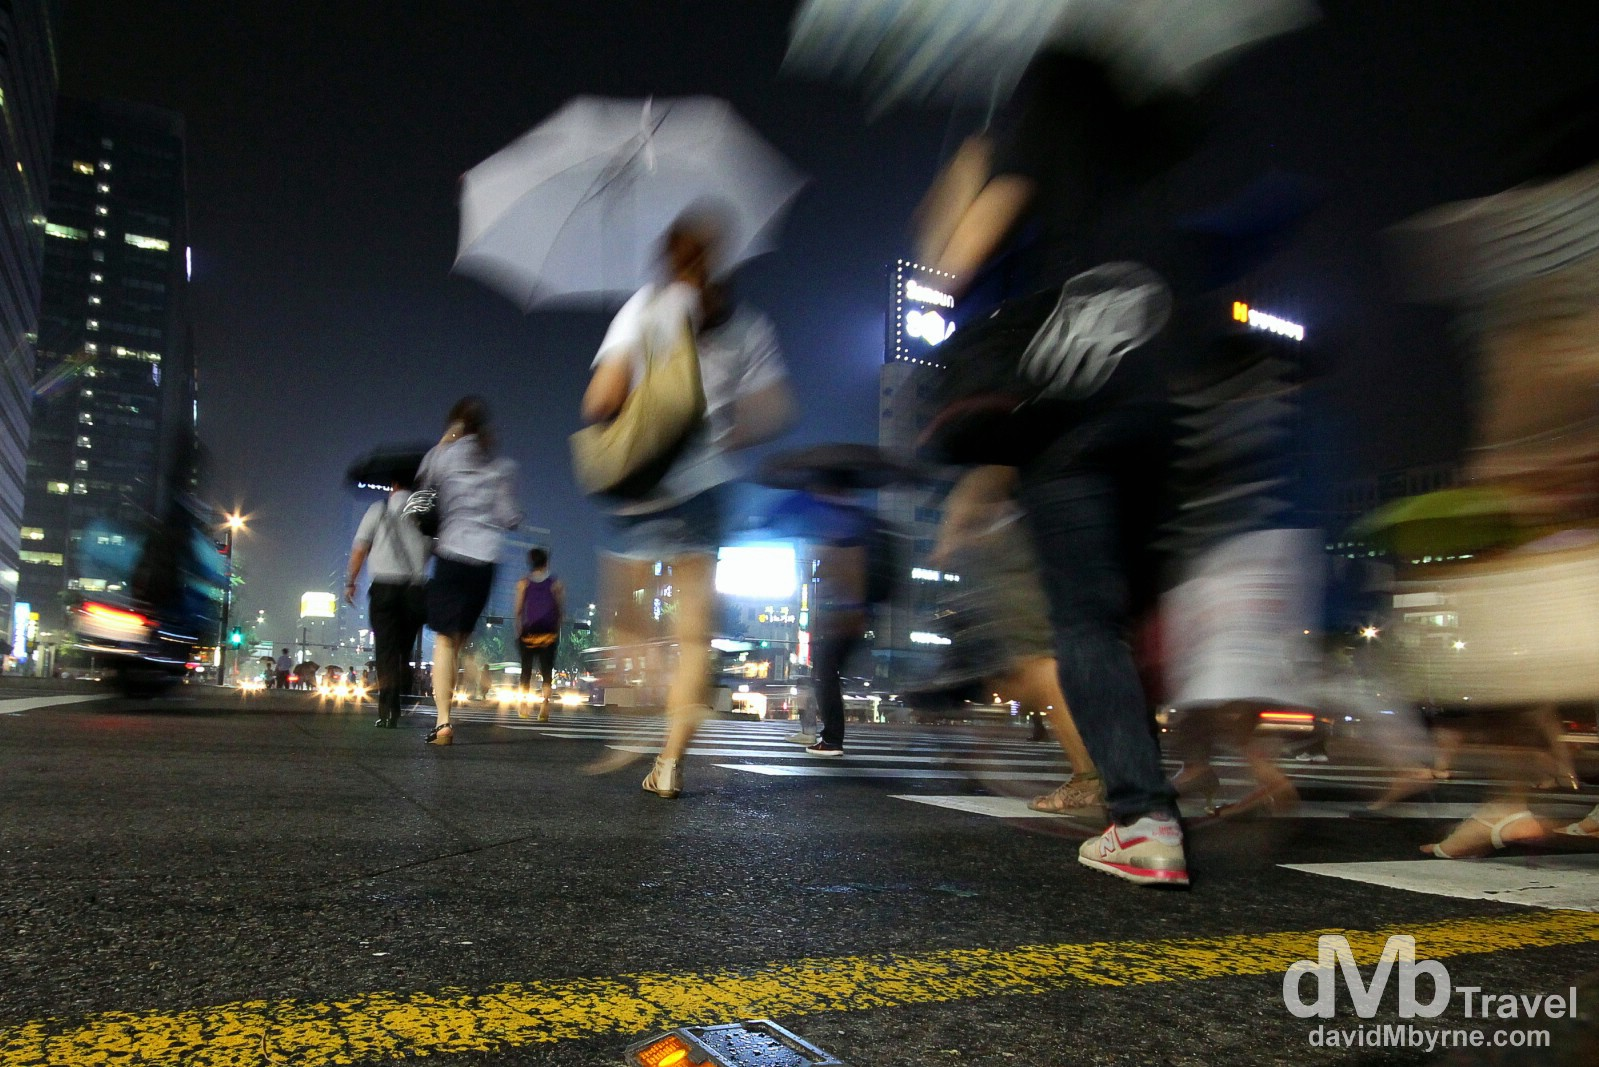 Crossing the road in light rain in Jongno, Seoul, South Korea. July 12th 2012.